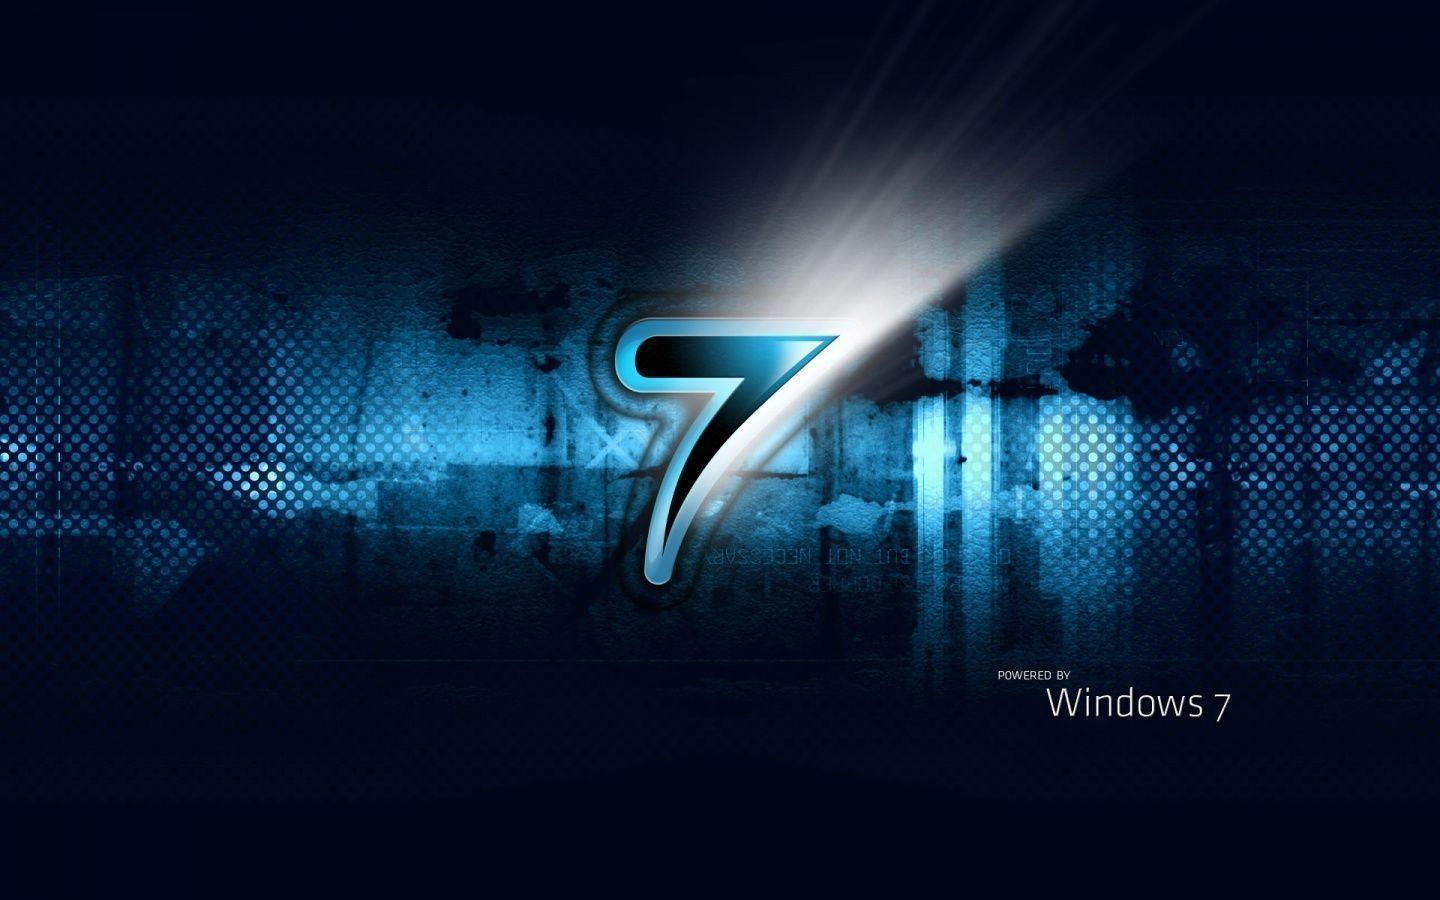 Wallpapers For > Hd Desktop Backgrounds For Windows 7